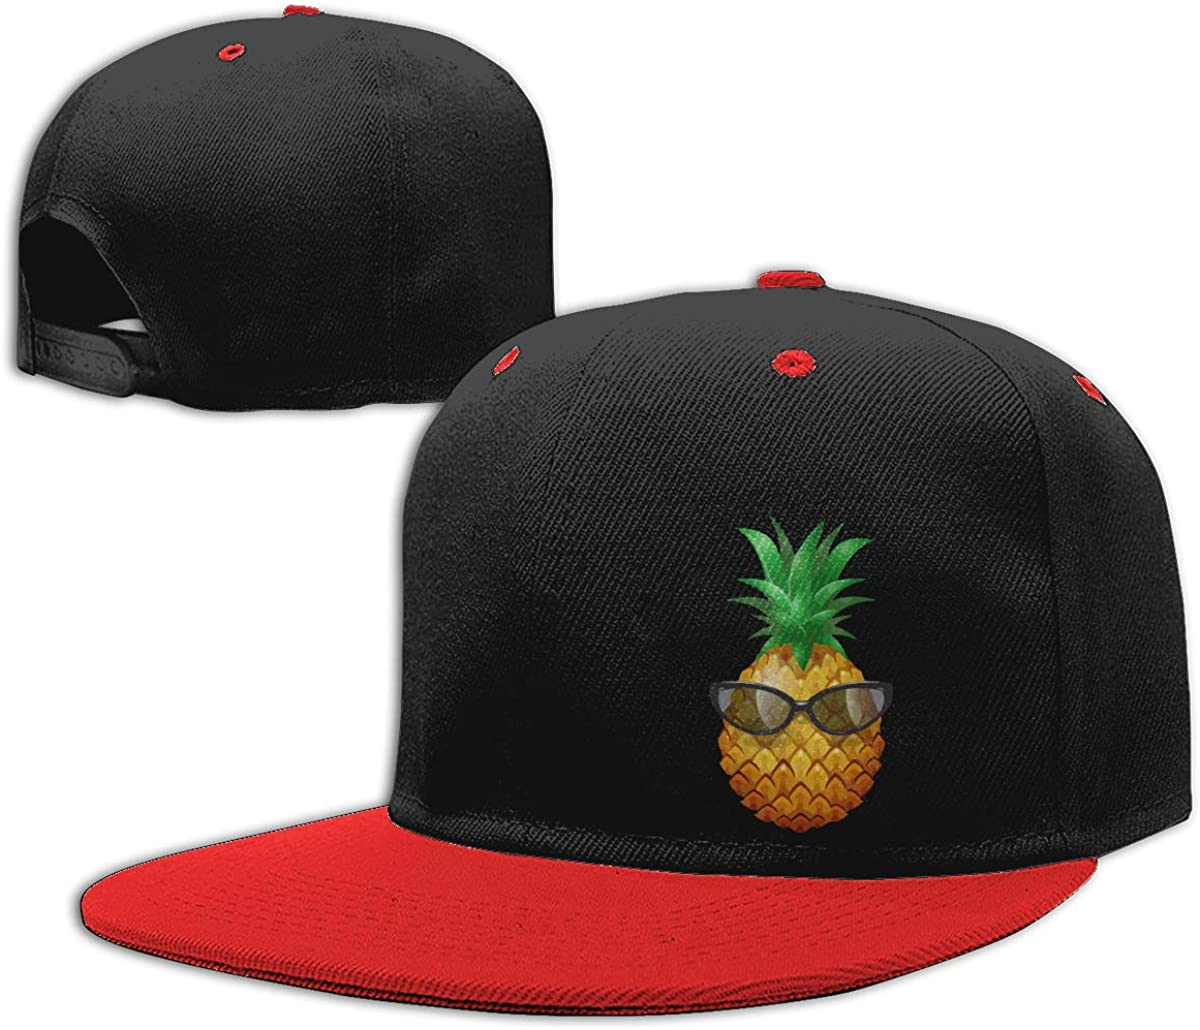 Pineapple Fashion Hip-Hop Baseball Caps NMG-01 Men and Women Trucker Cap